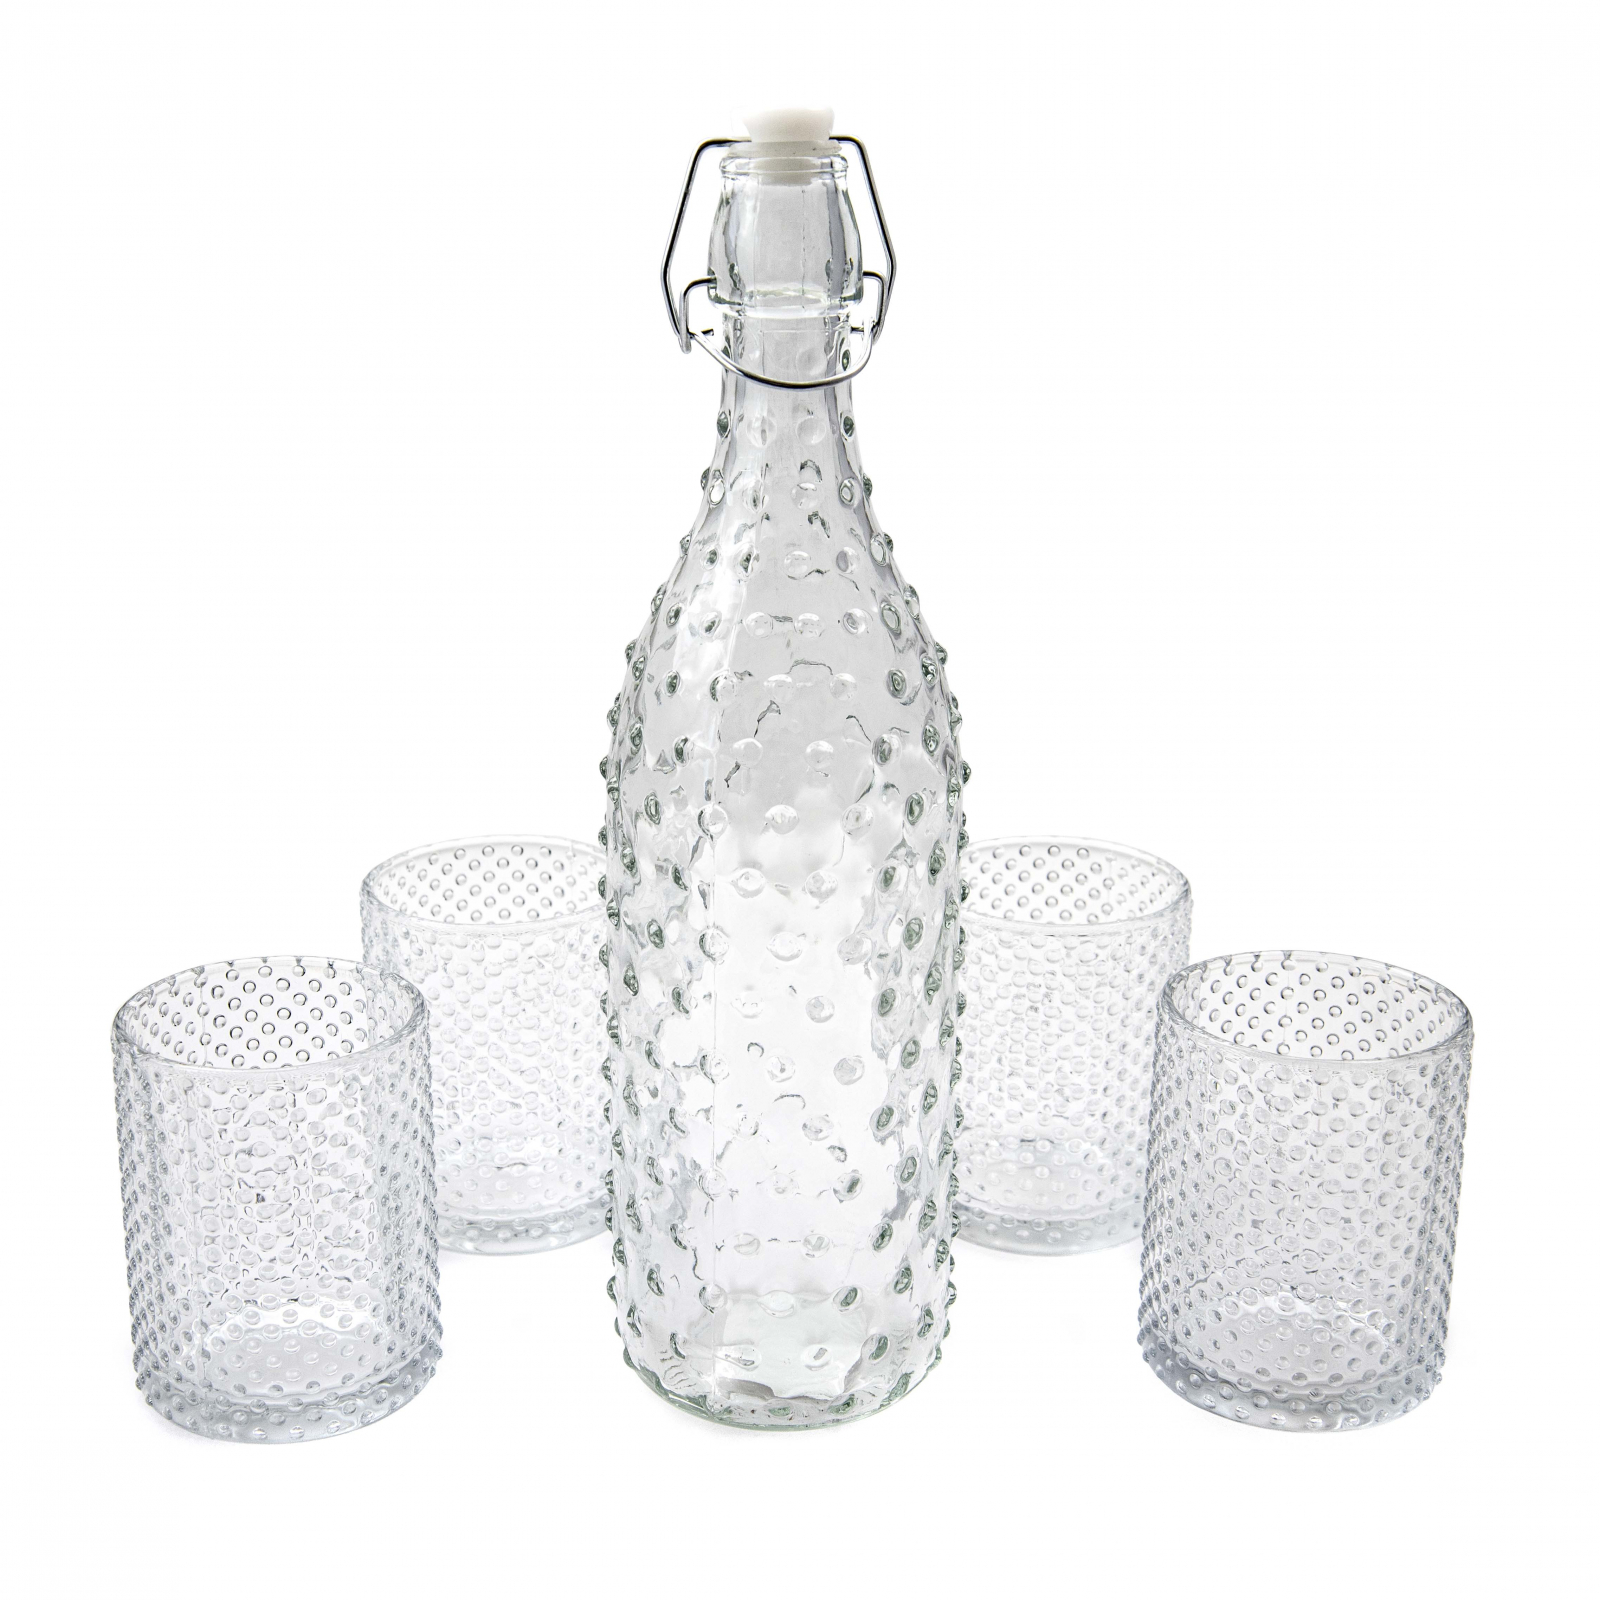 Beille 34oz Glass Bottle and 10oz Drinking Glass Set